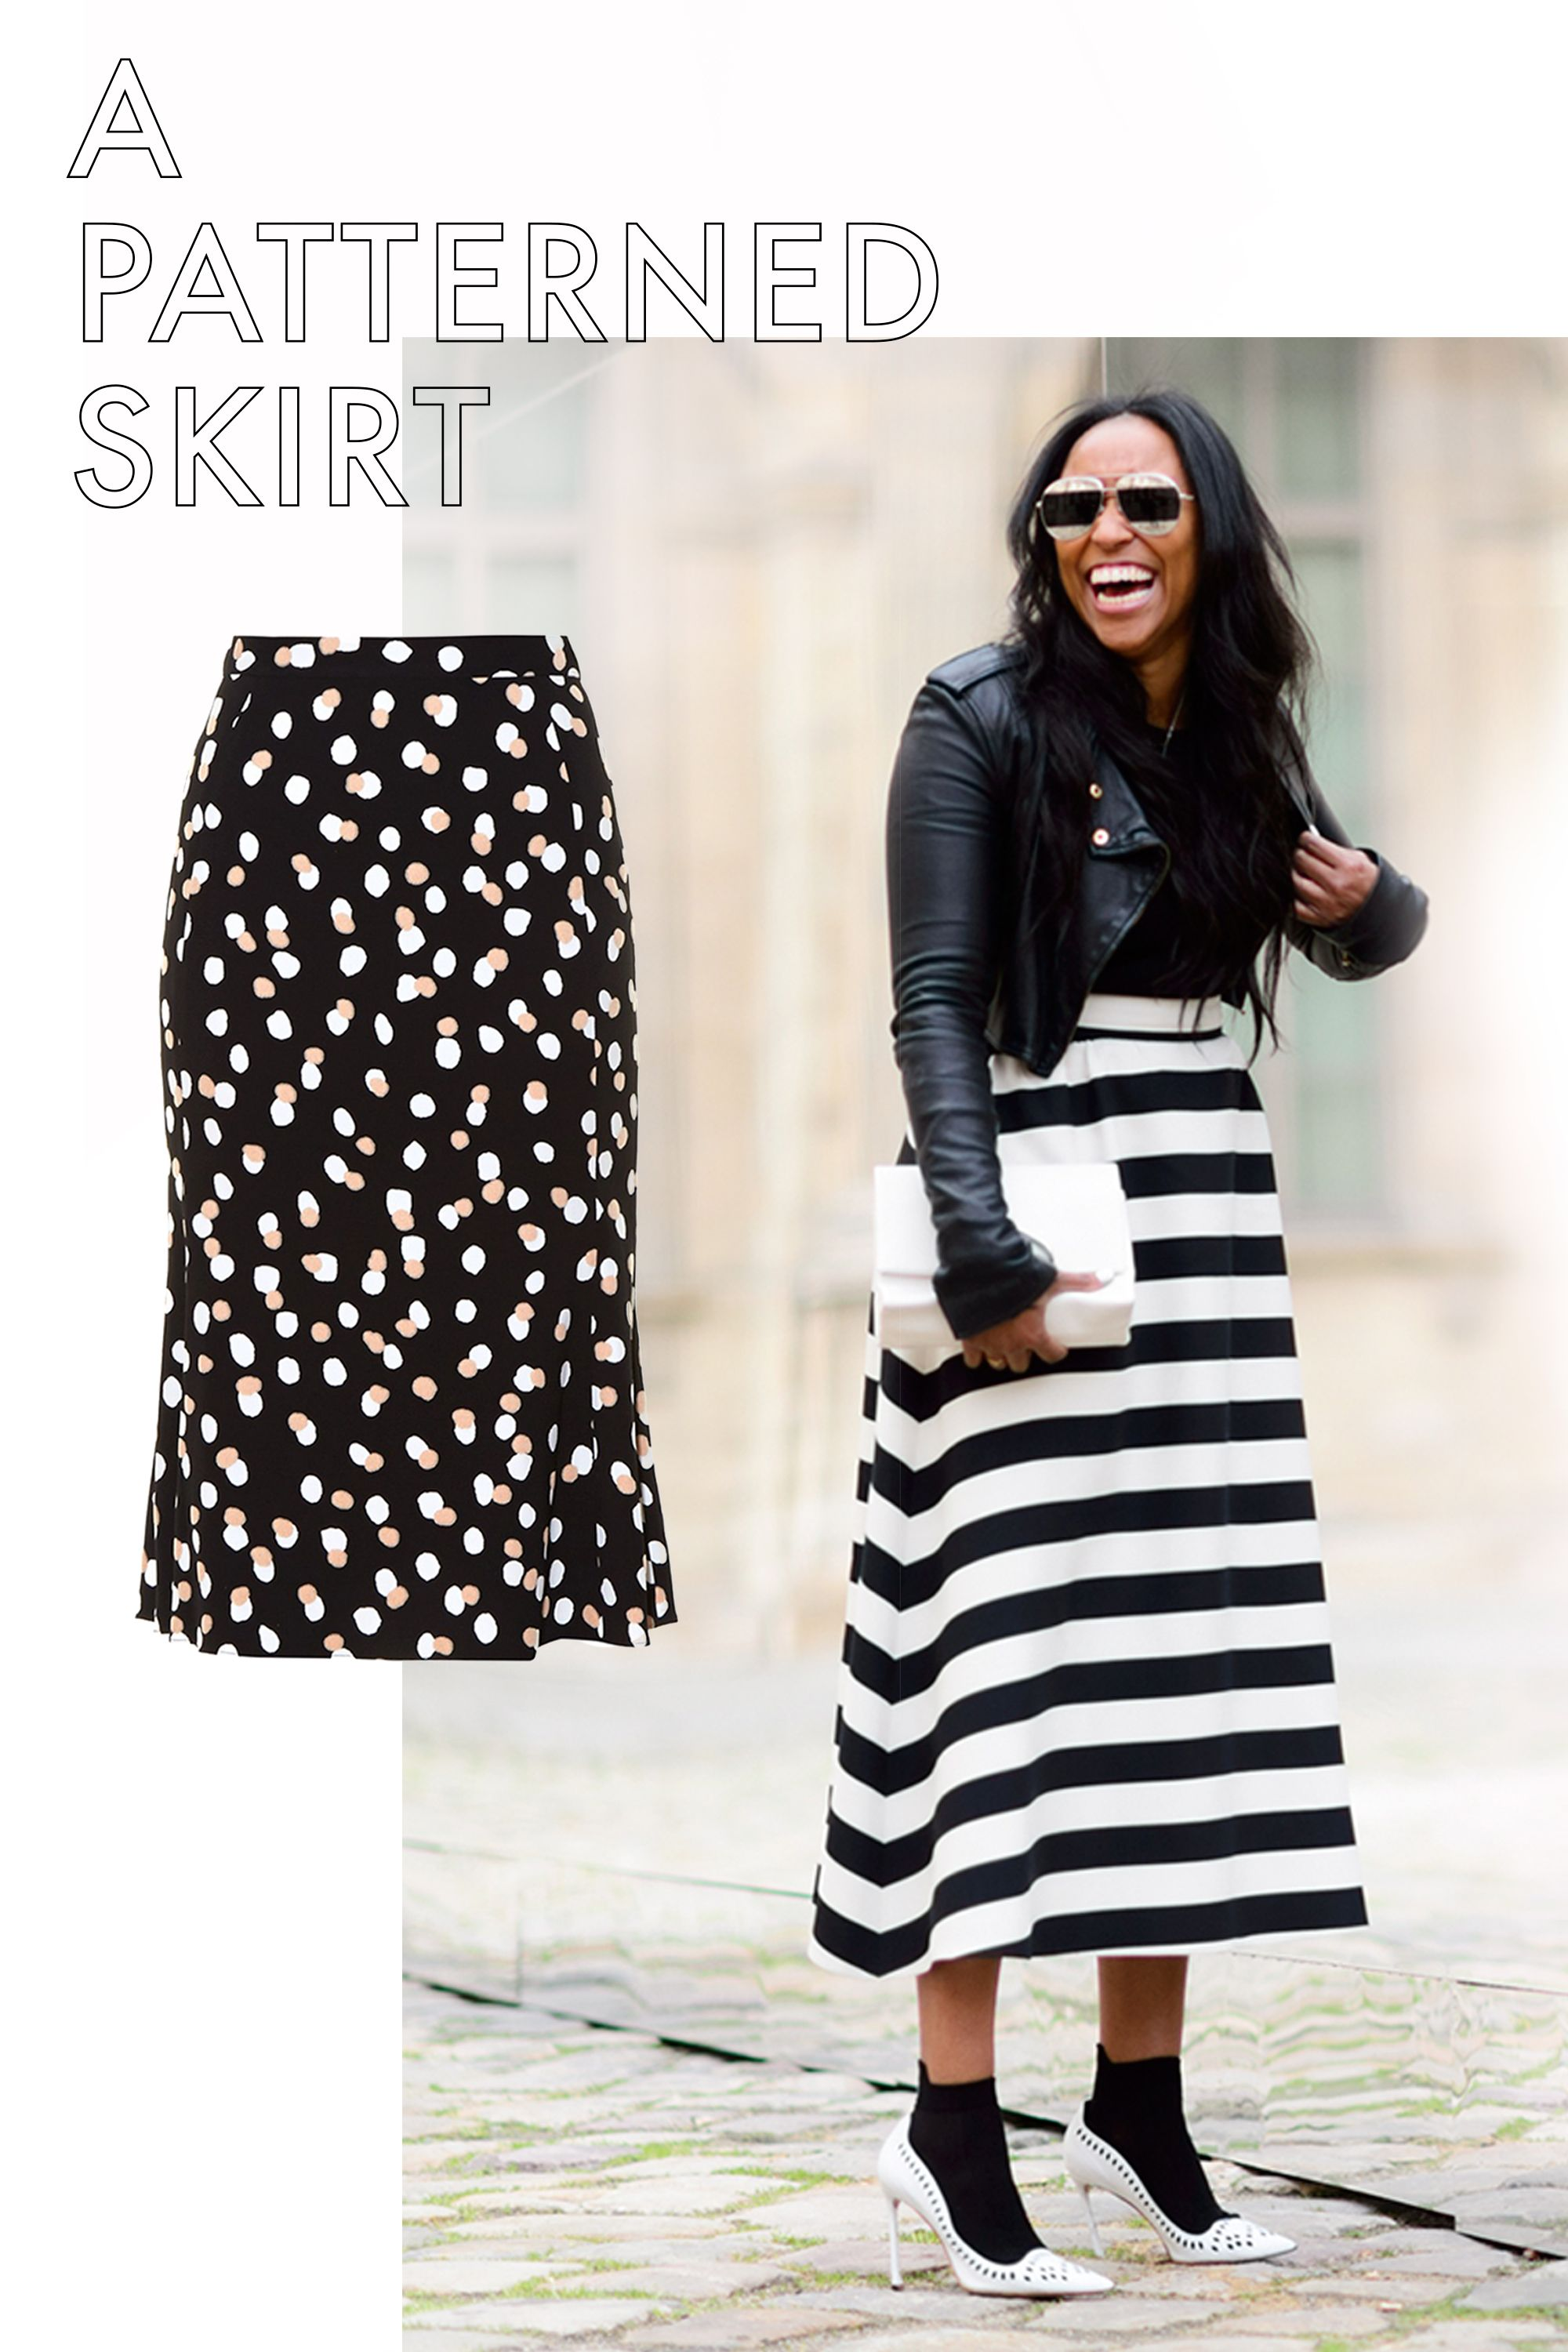 "<p>A bold print or pattern has the power to lift your spirits and your look. All over polka dots, bright florals, and stripes, for example, are all good examples of mood-boosting prints. Paired with simple basics (a white tee shirt, simple black pumps) and you've got a real look.</p><p><em>Altuzarra Novak Polka-Dot Stretch-Crepe Skirt, $1,150; <a href=""http://www.matchesfashion.com/products/Altuzarra-Novak-polka-dot-stretch-cady-skirt-1053191""></a></em><a href=""http://www.matchesfashion.com/products/Altuzarra-Novak-polka-dot-stretch-cady-skirt-1053191"" target=""_blank""><em>matchesfashion.com</em></a></p>"